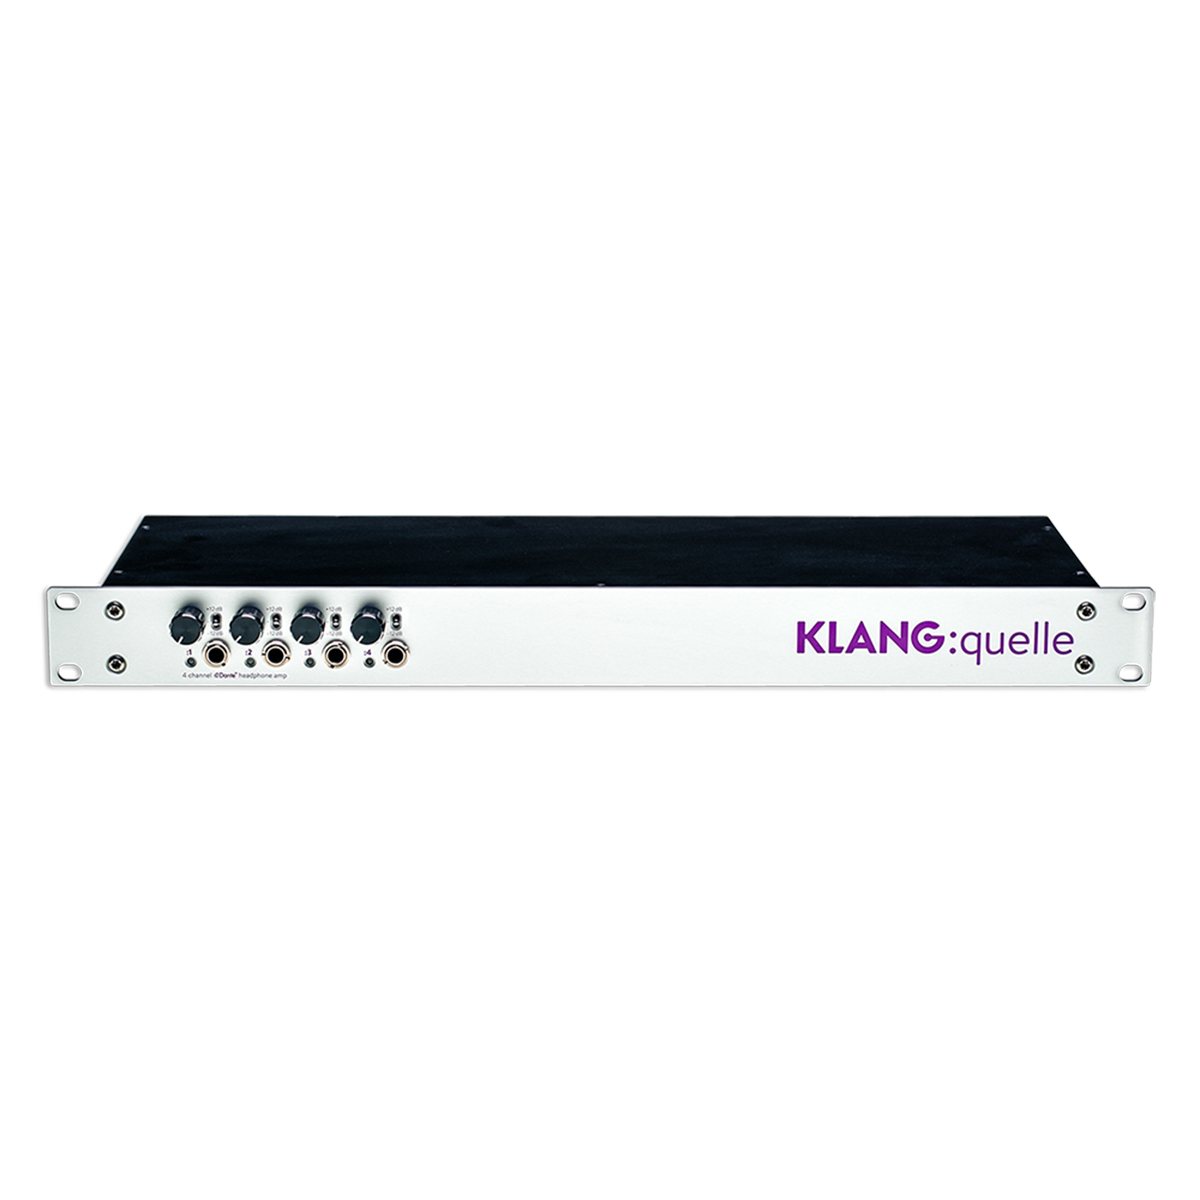 klang quelle19 8 ch dante xlr headphone amp sonic circus. Black Bedroom Furniture Sets. Home Design Ideas